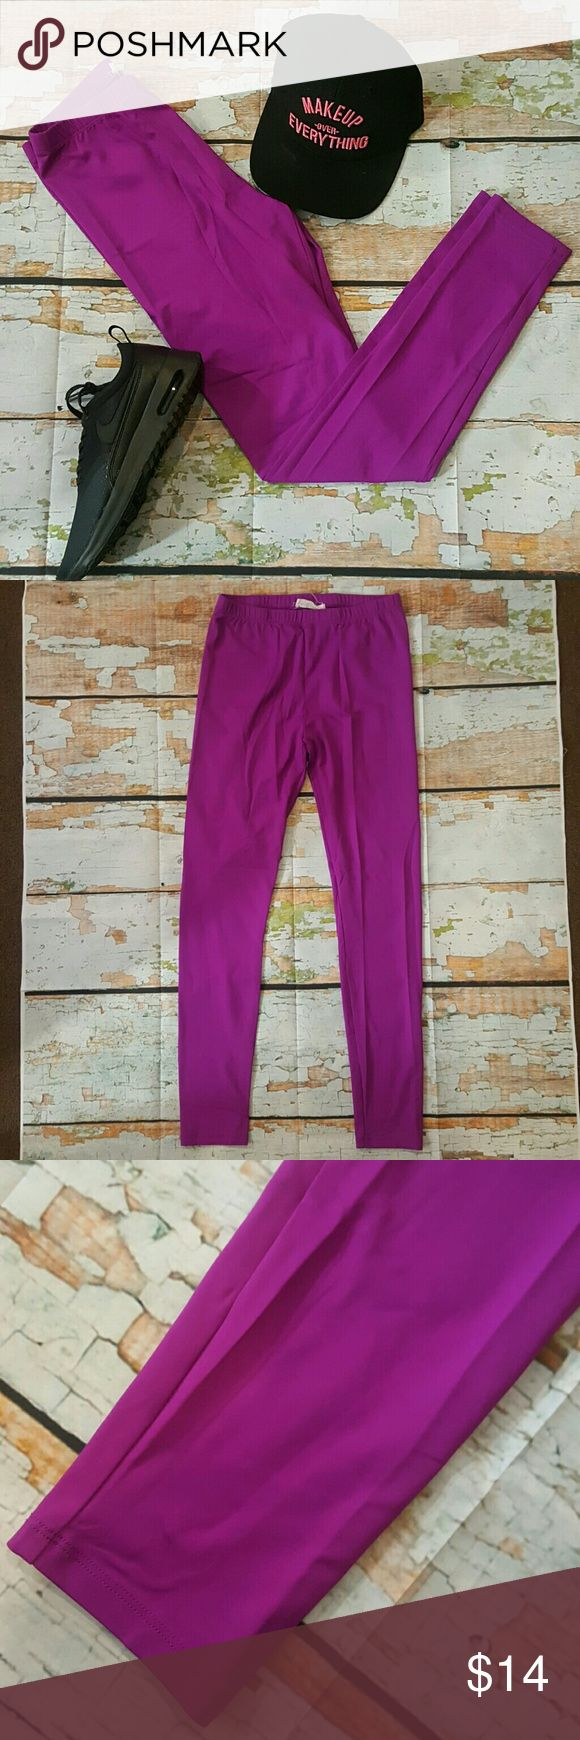 Forever 21 xxii Raspberry Leggings M Like new condition  Super Stretch Similar to a thick bathing suit material  Moisture wick Legging gym pants Bright purple Raspberry color  Bundle and Save Forever 21 Pants Leggings